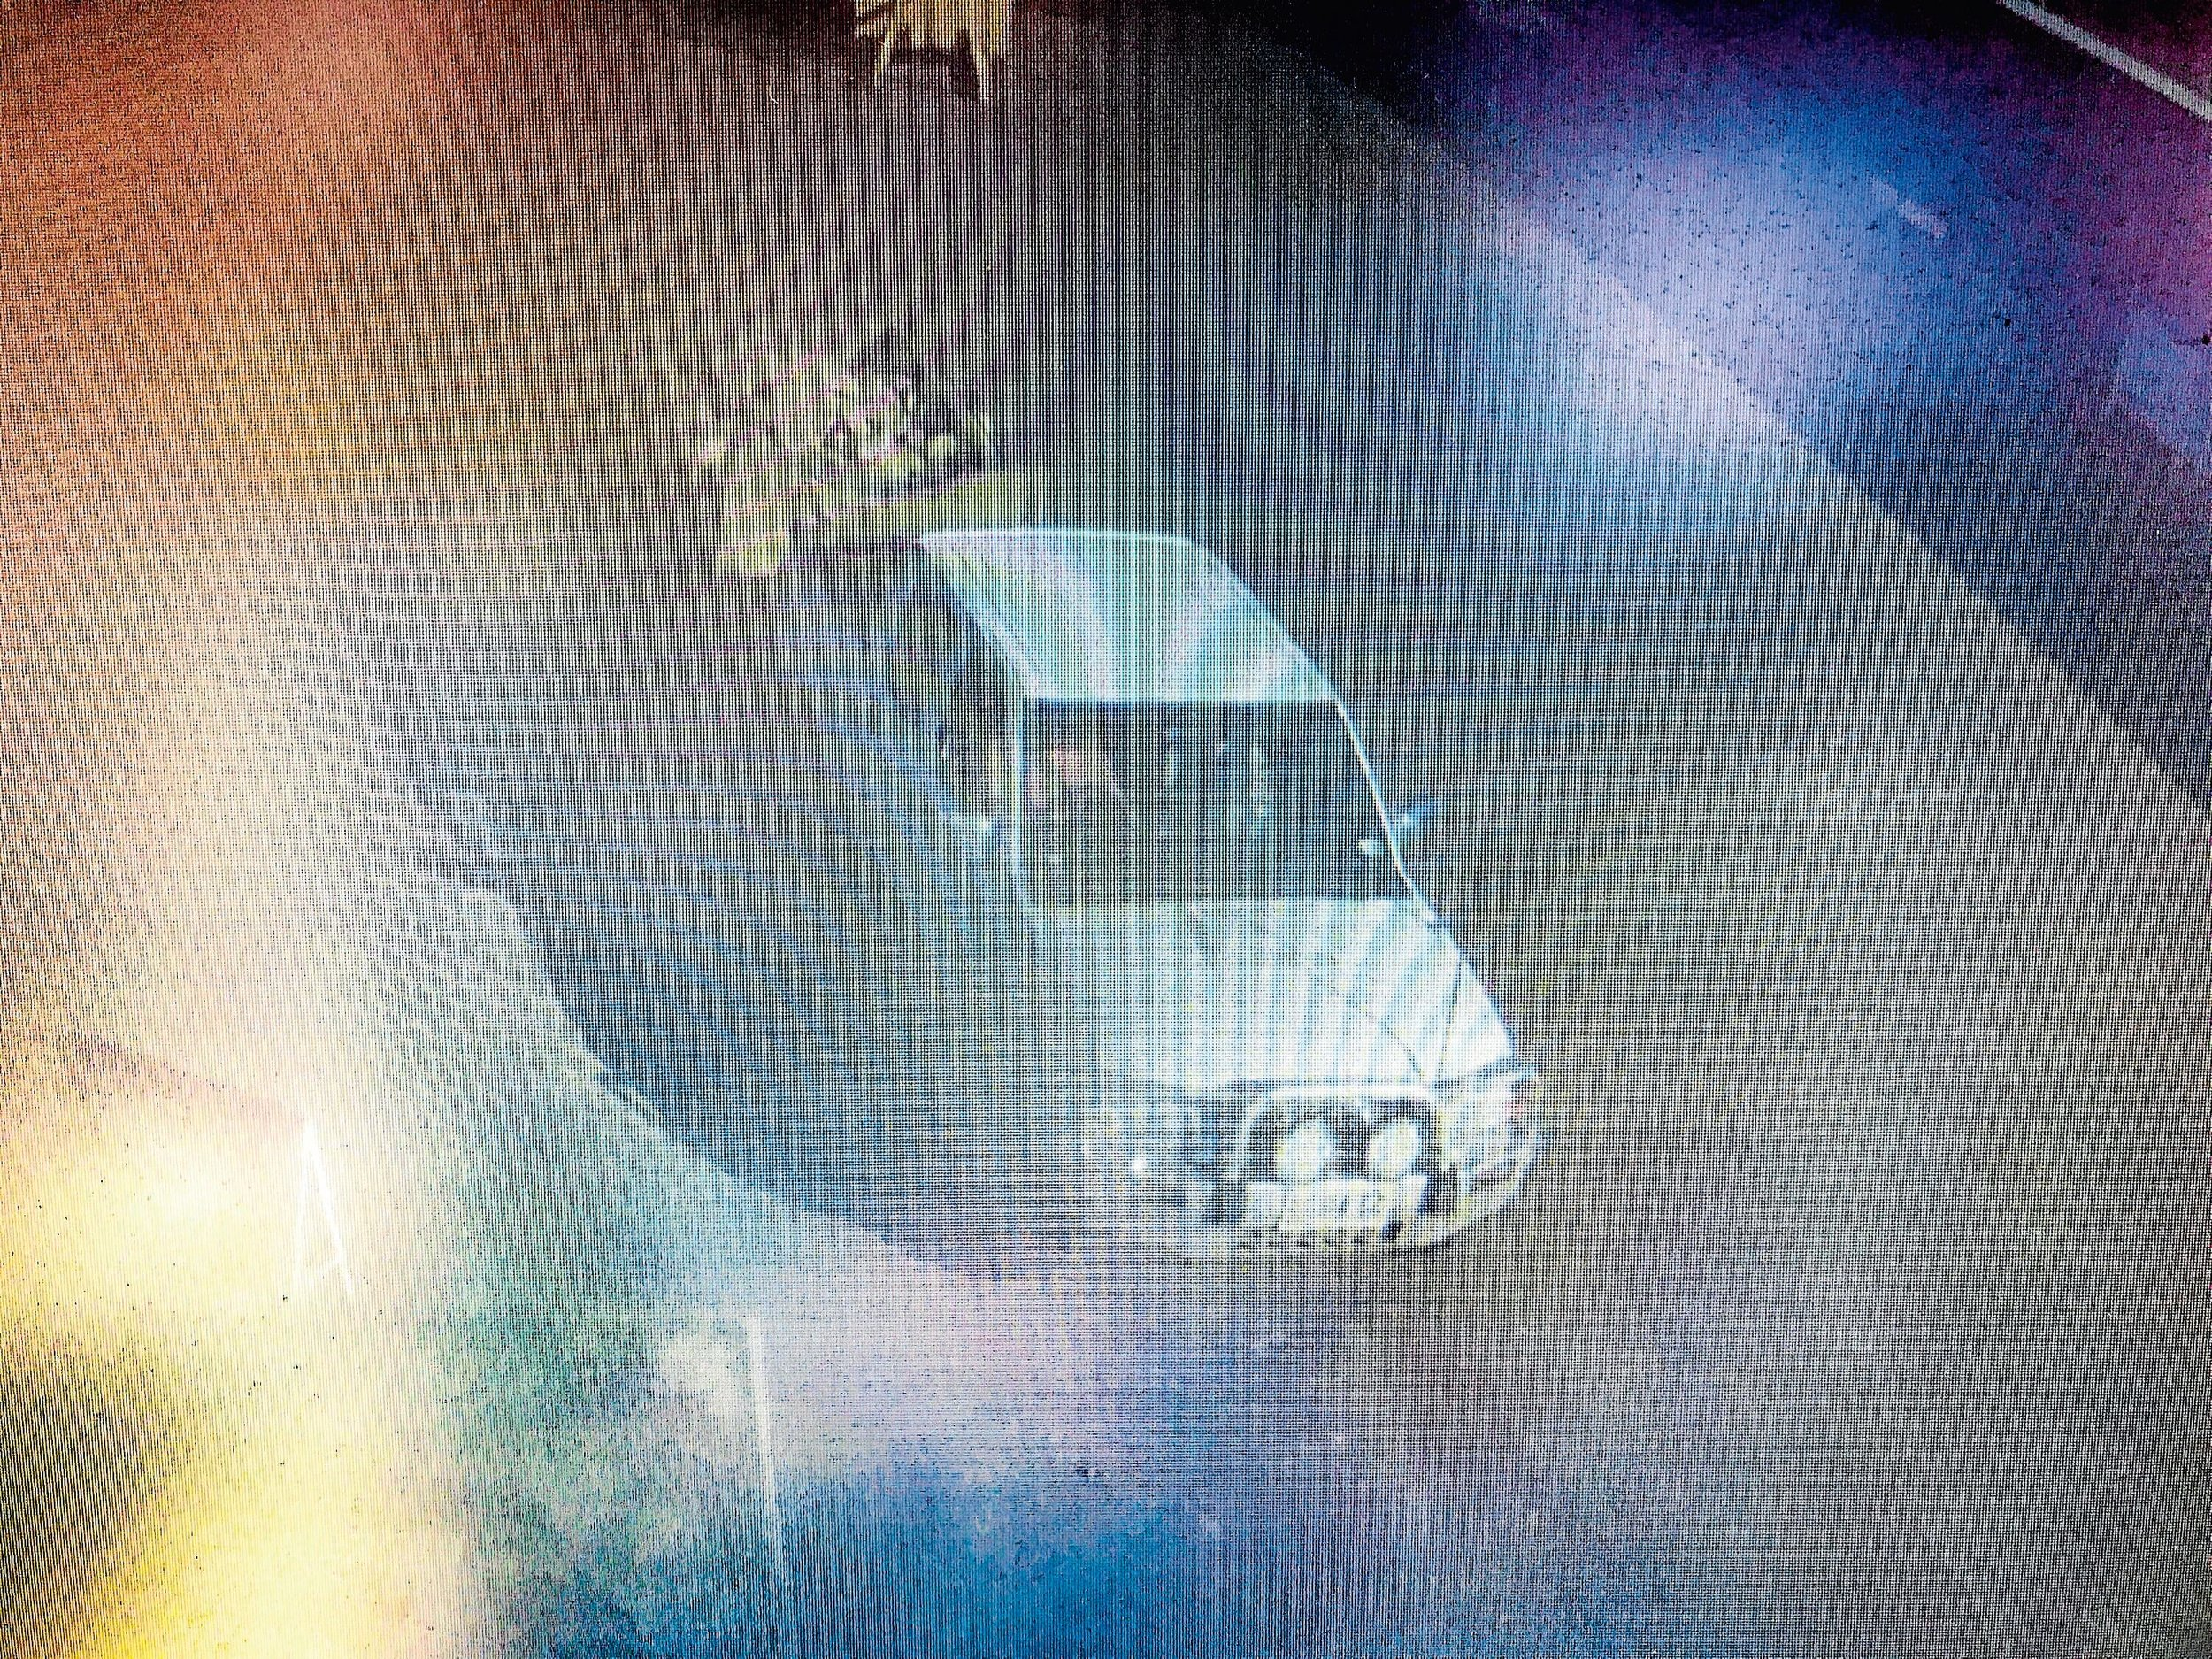 • Scottsdale Police are looking to identify this vehicle in relation to allegedly dumping deadly asbestos at the Scottsdale Waste Transfer Station on Sunday. Image extracted from Dorset Council's CCTV footage.